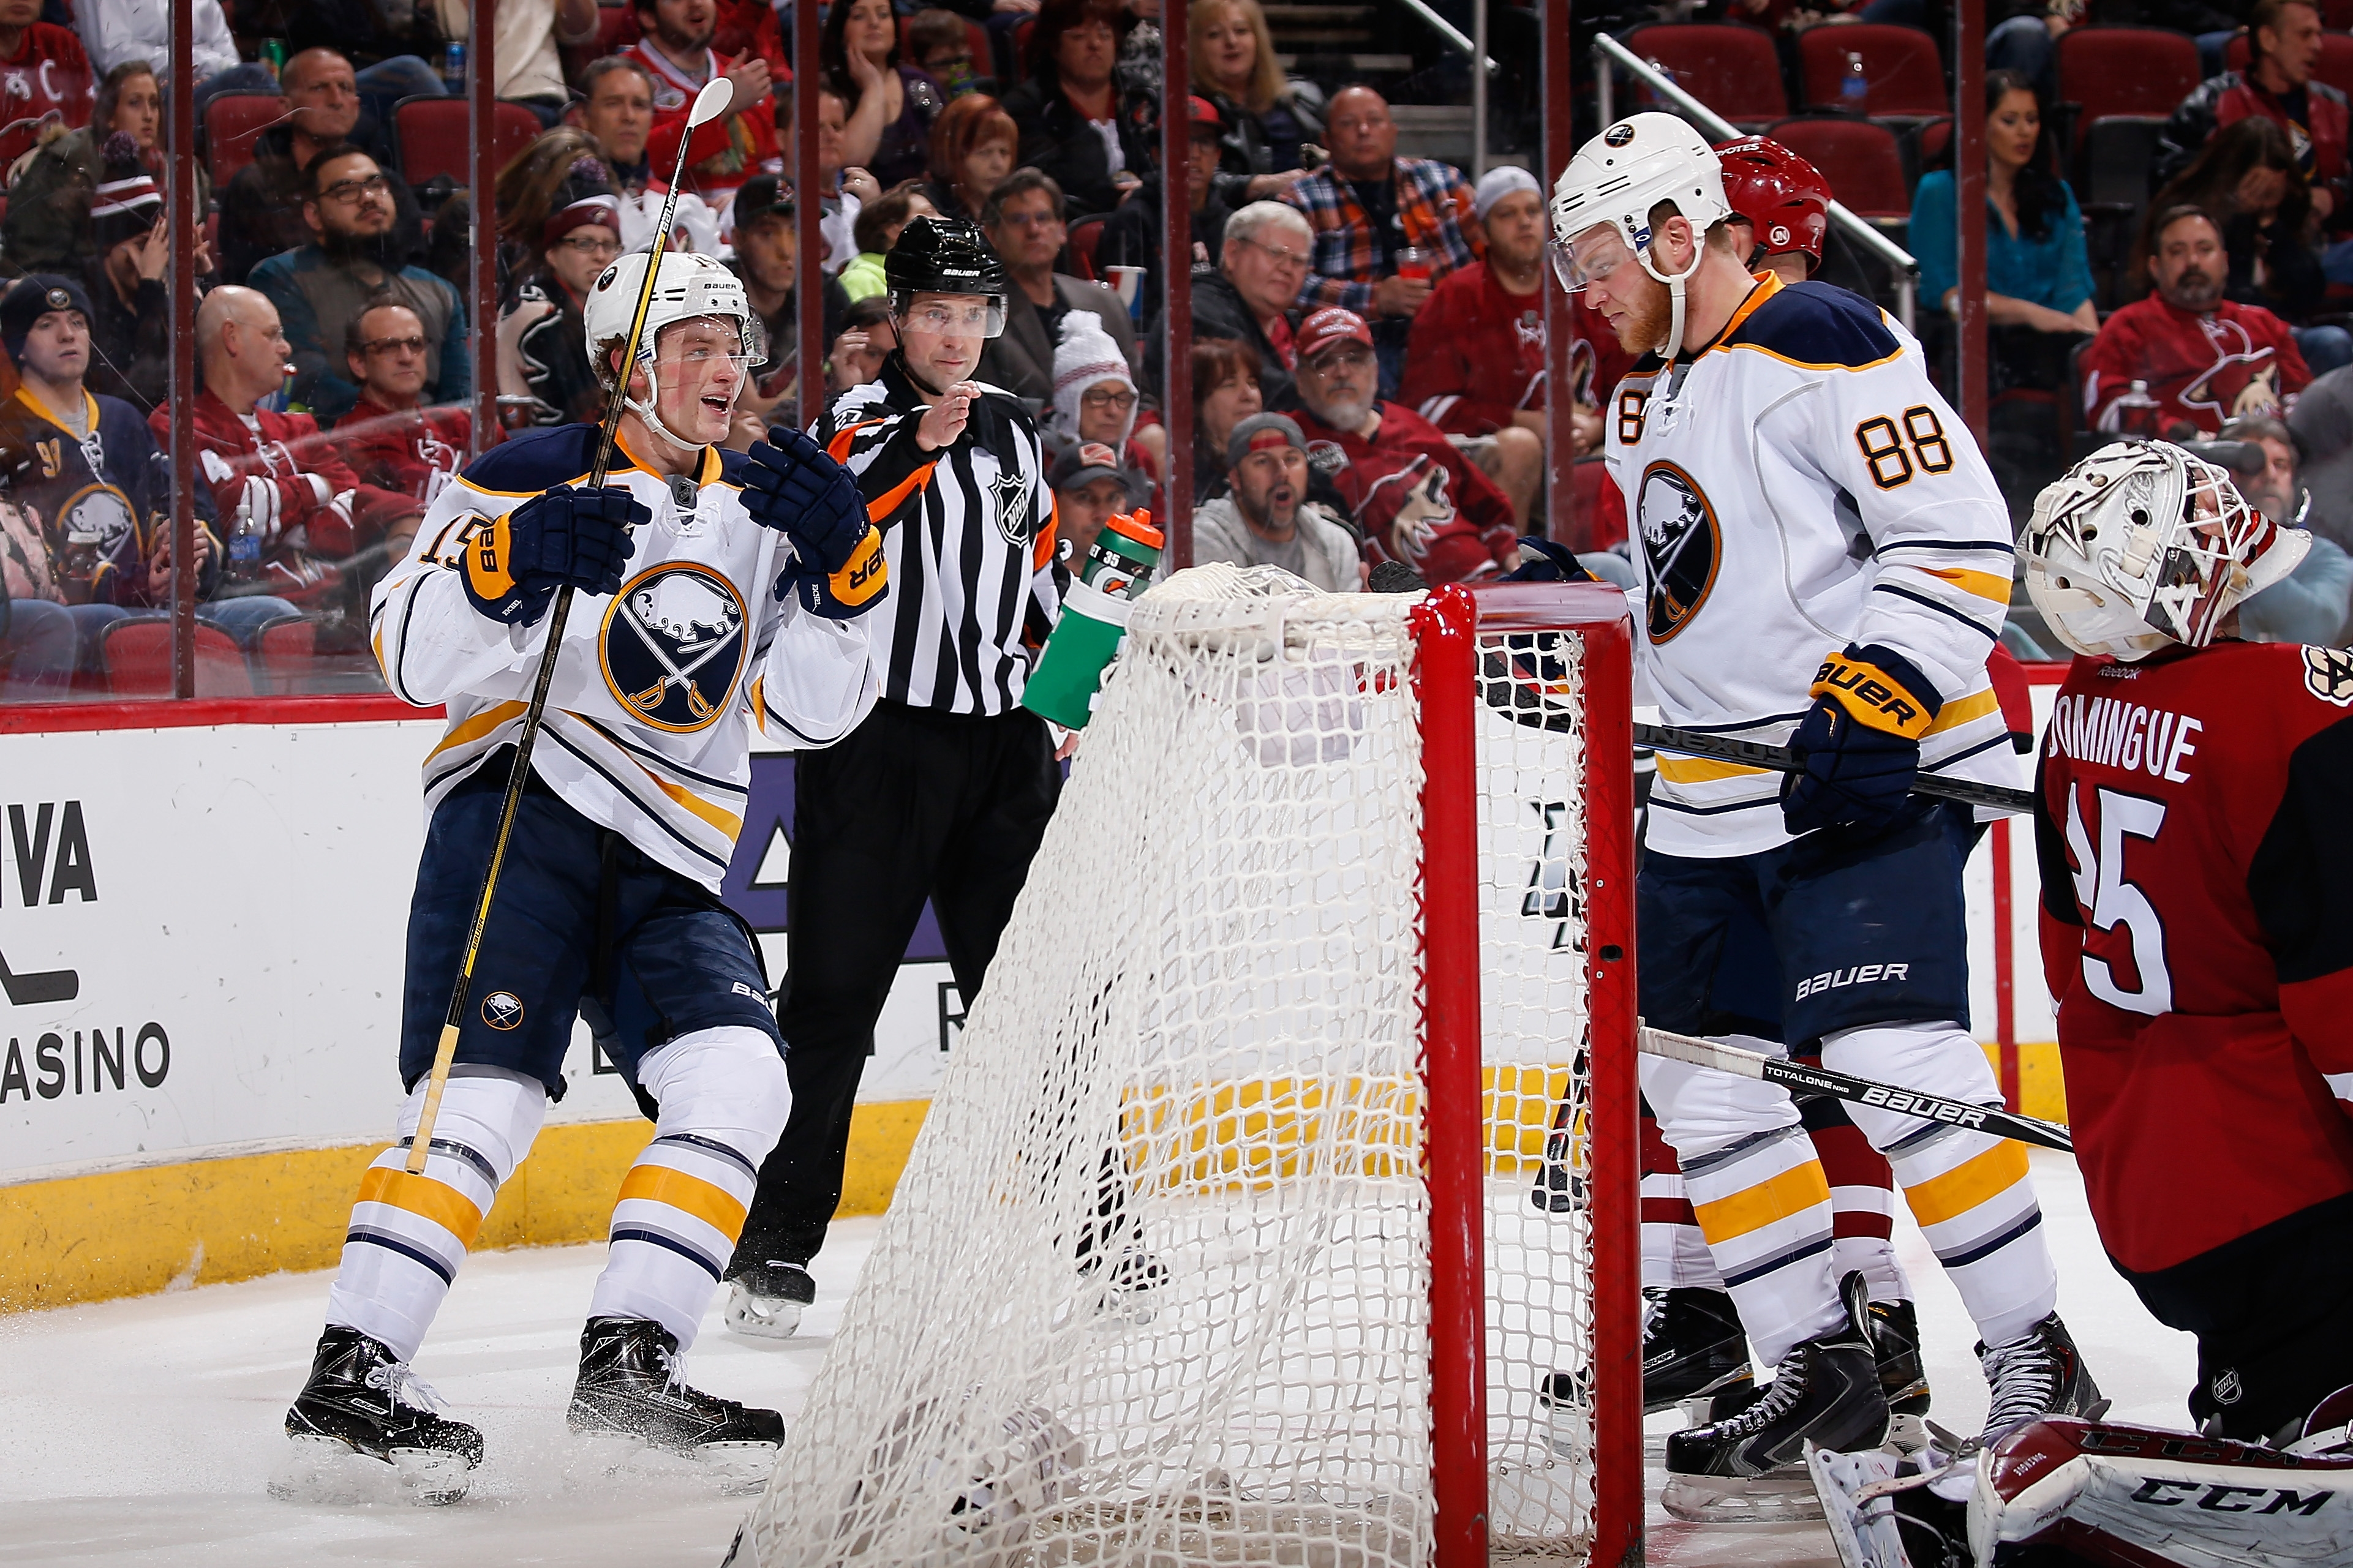 Jack Eichel, left, and Jamie McGinn celebrate after McGinn's power-play goal in Monday's victory over the Arizona Coyotes.